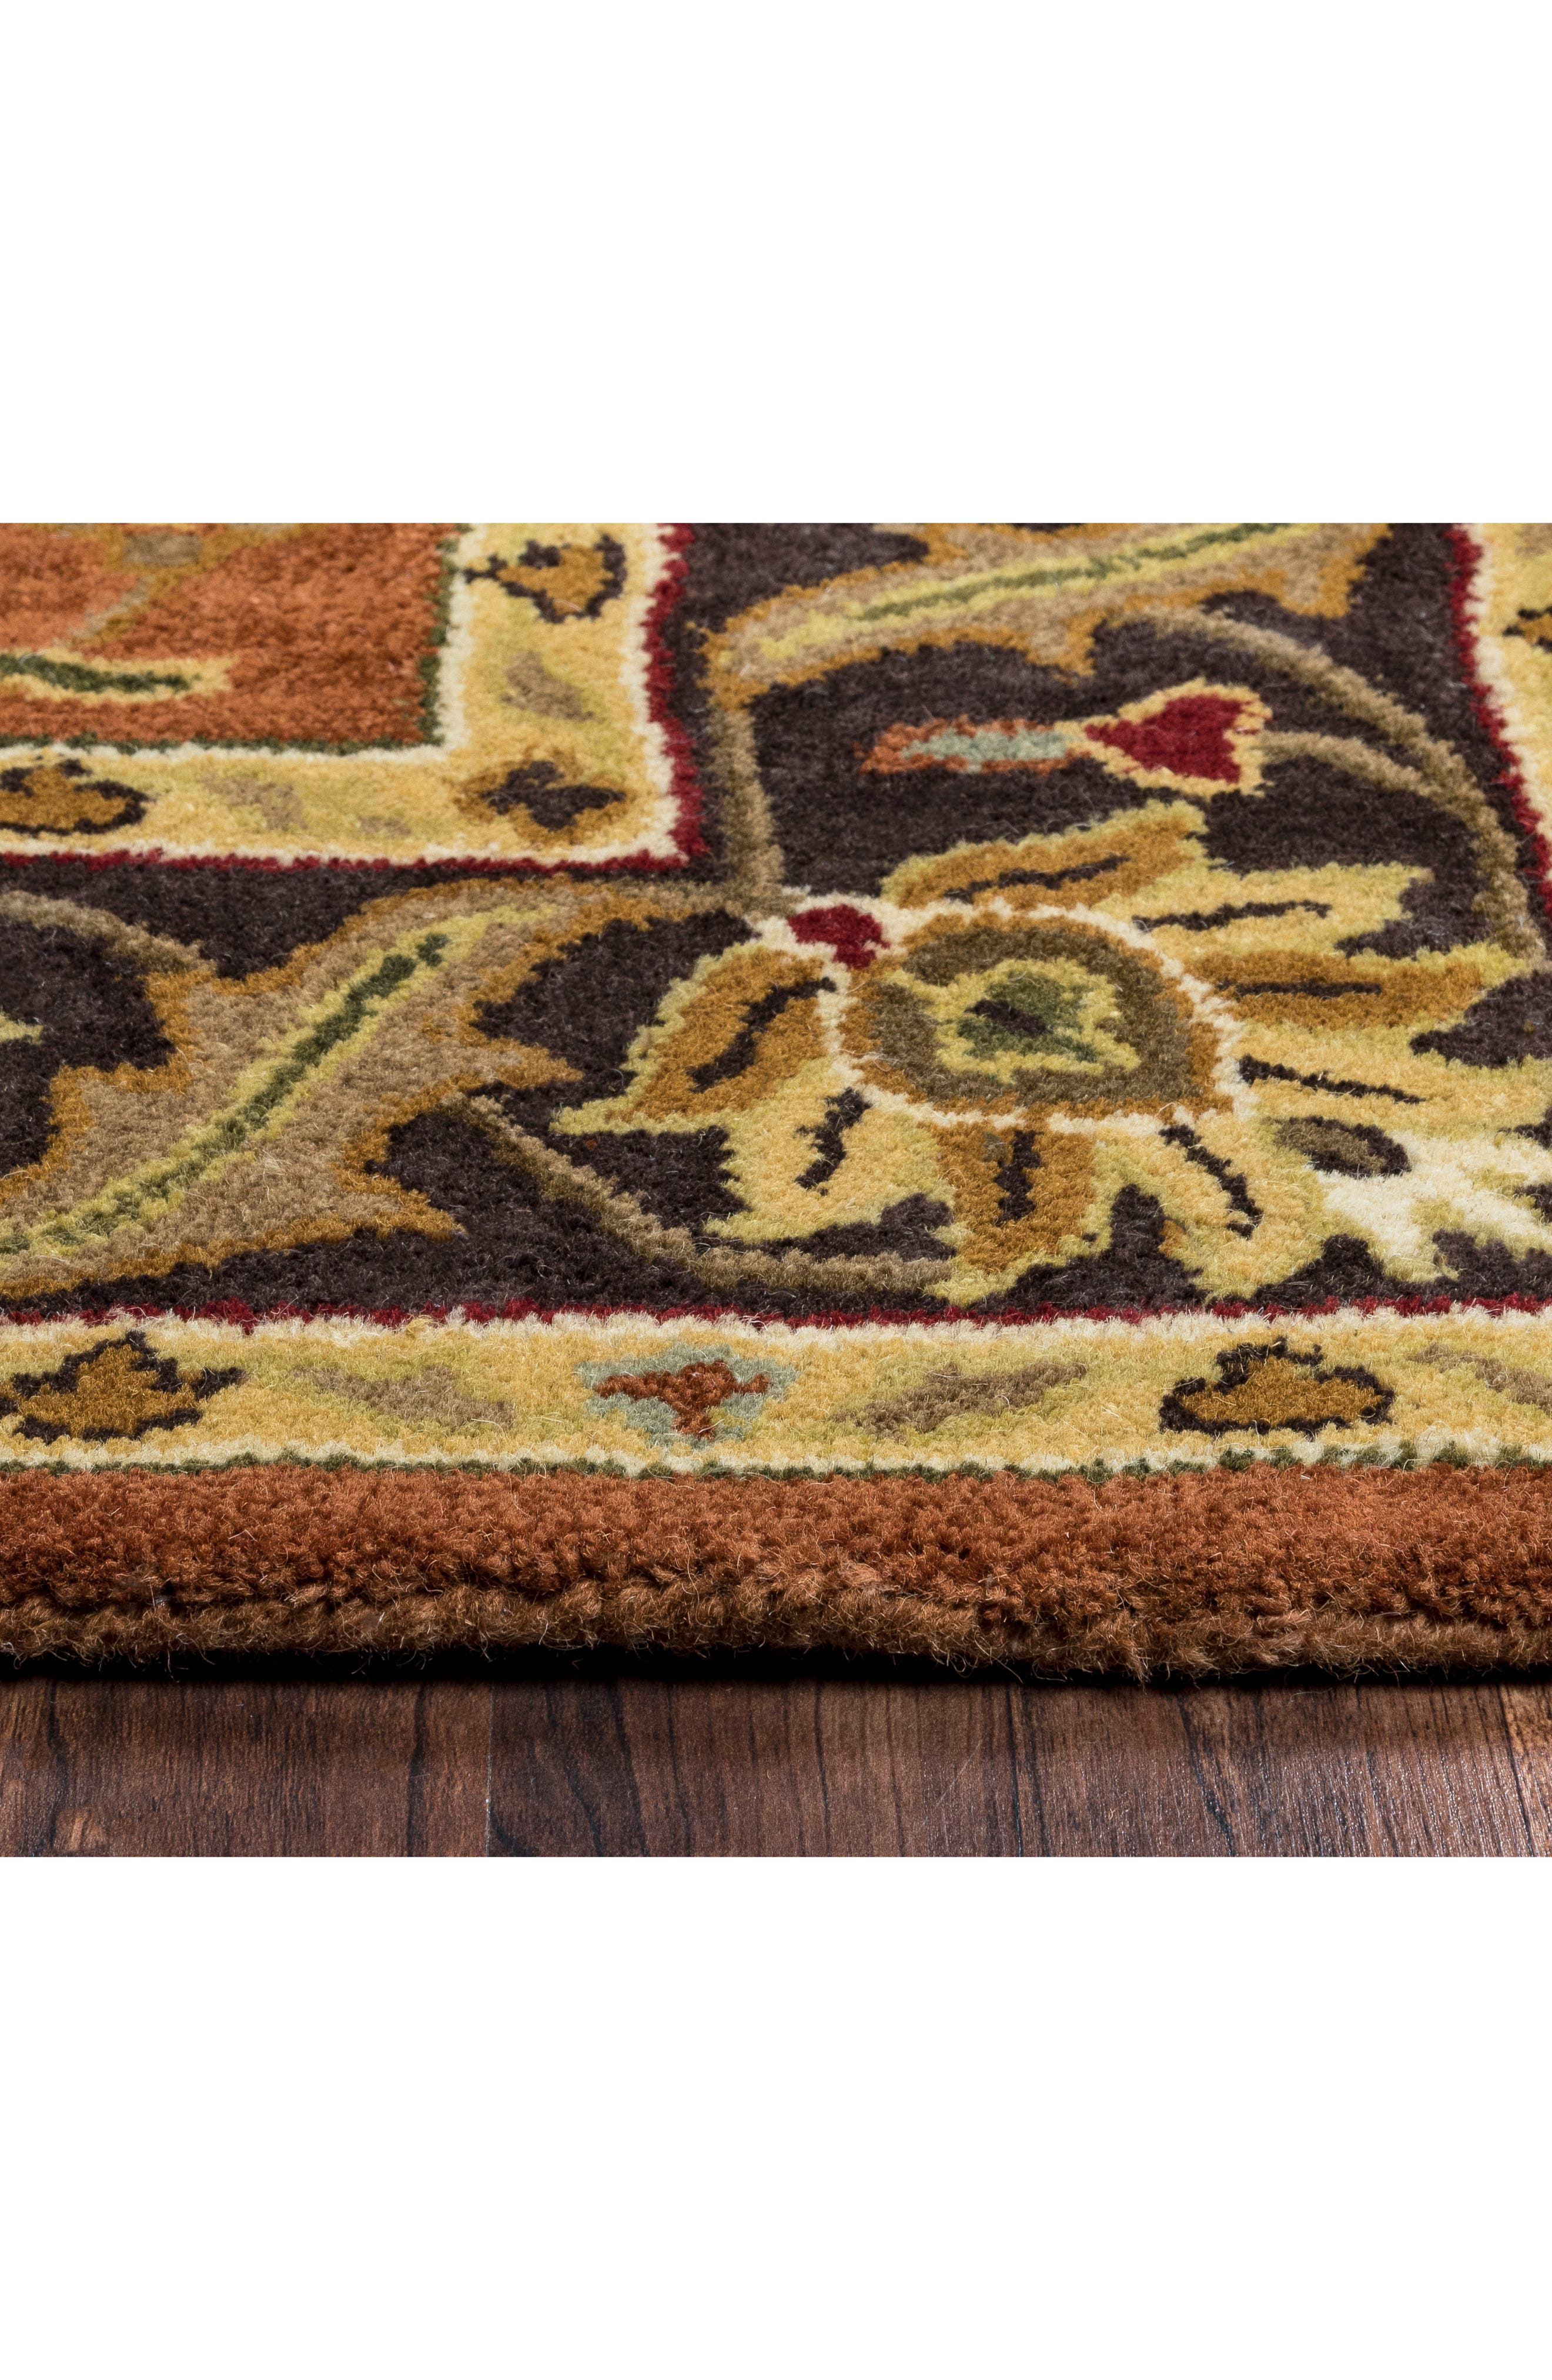 Amalia Hand Tufted Wool Area Rug,                             Alternate thumbnail 4, color,                             220